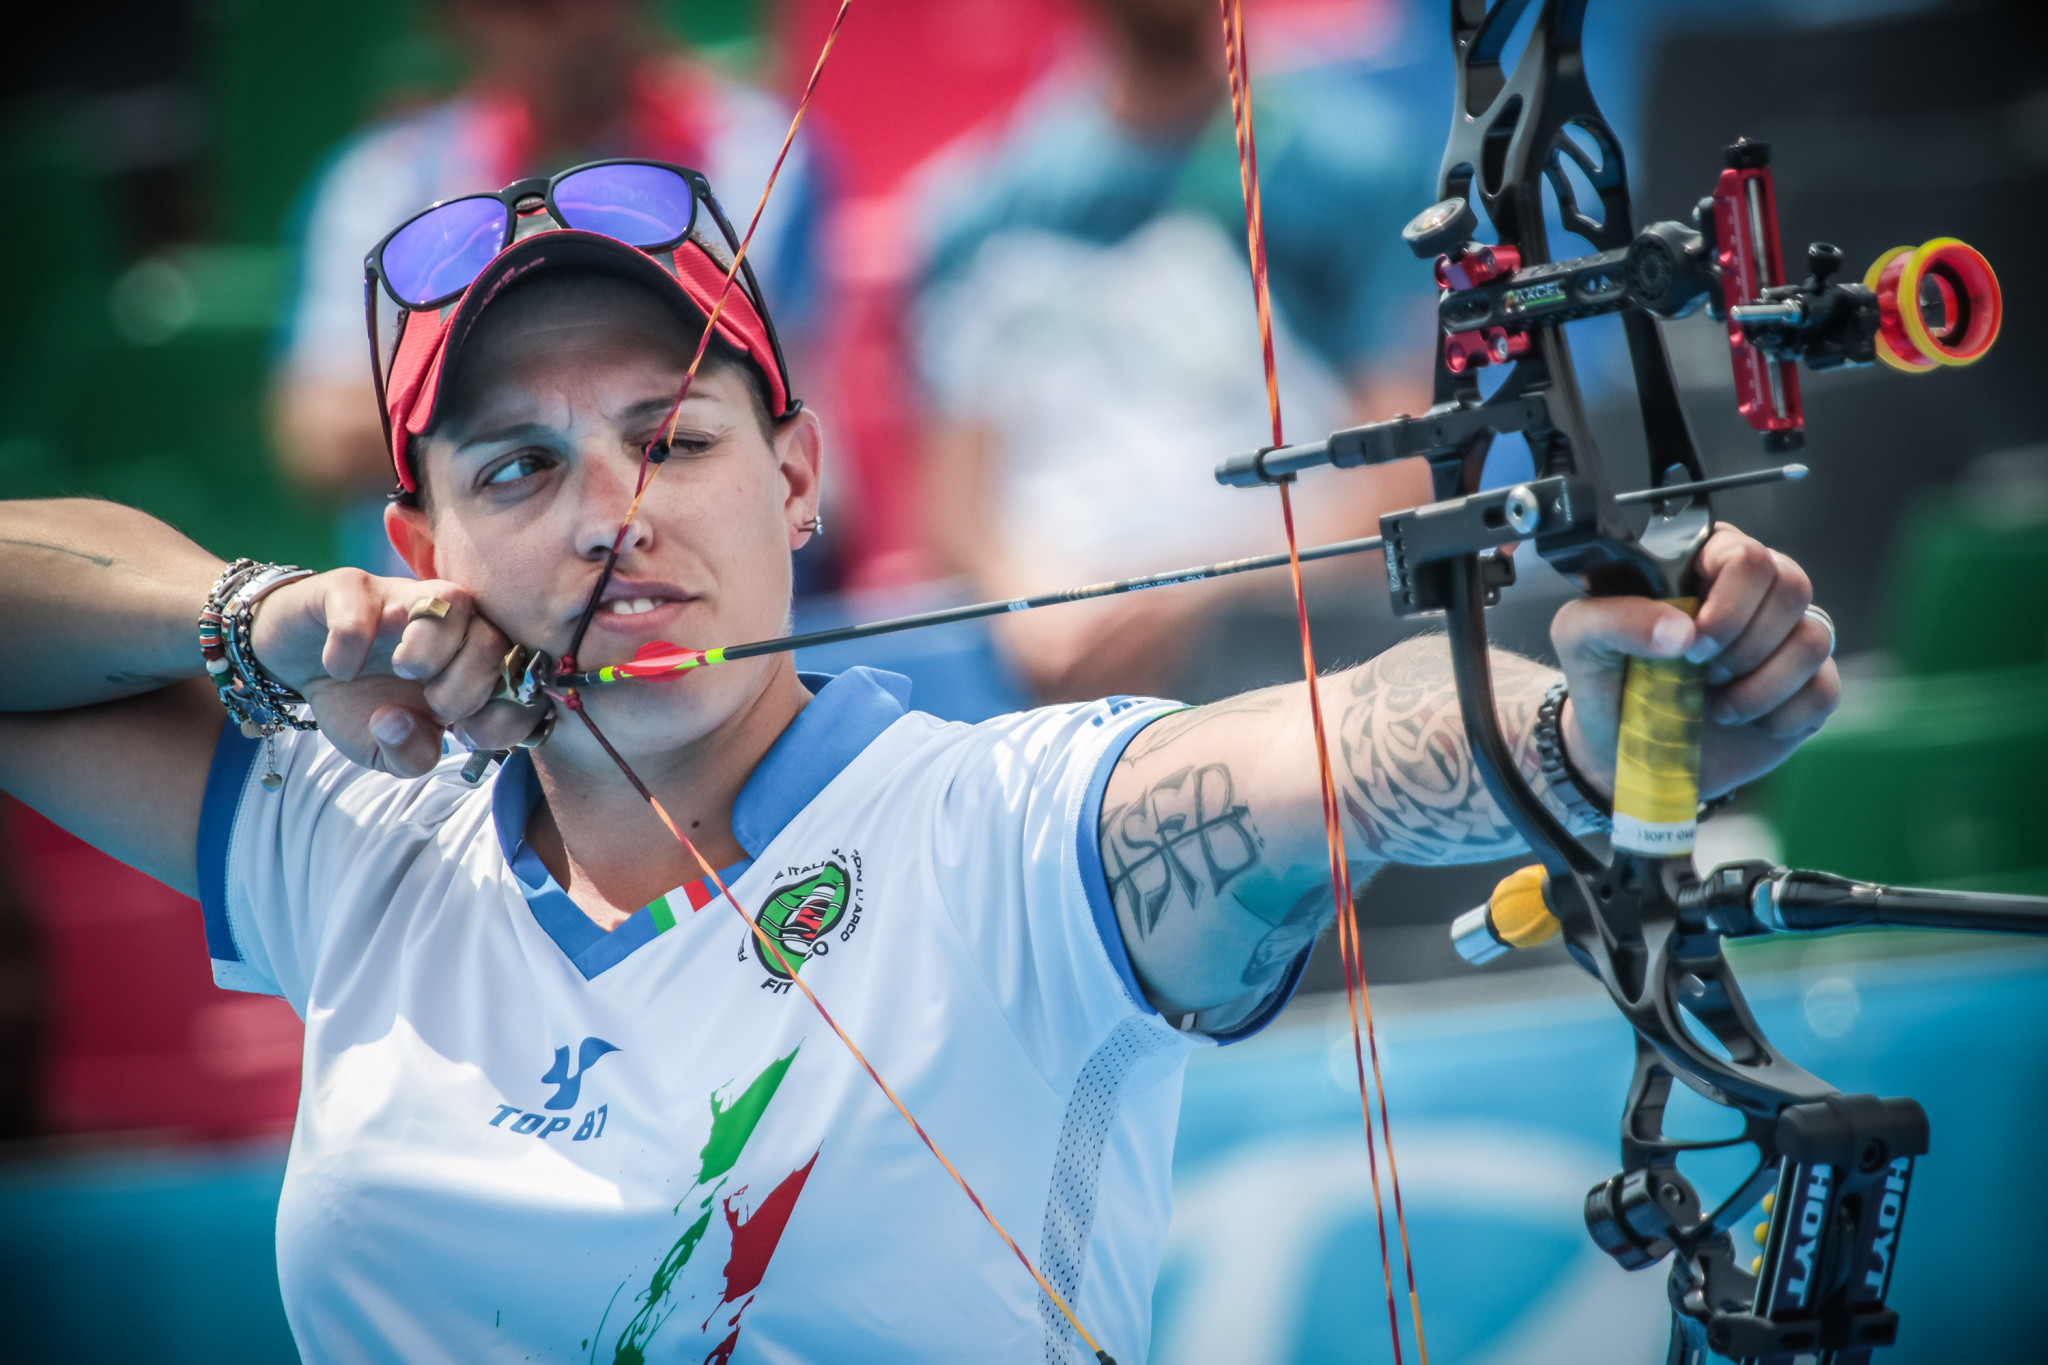 Italy in contention for three team titles at European Archery Championships